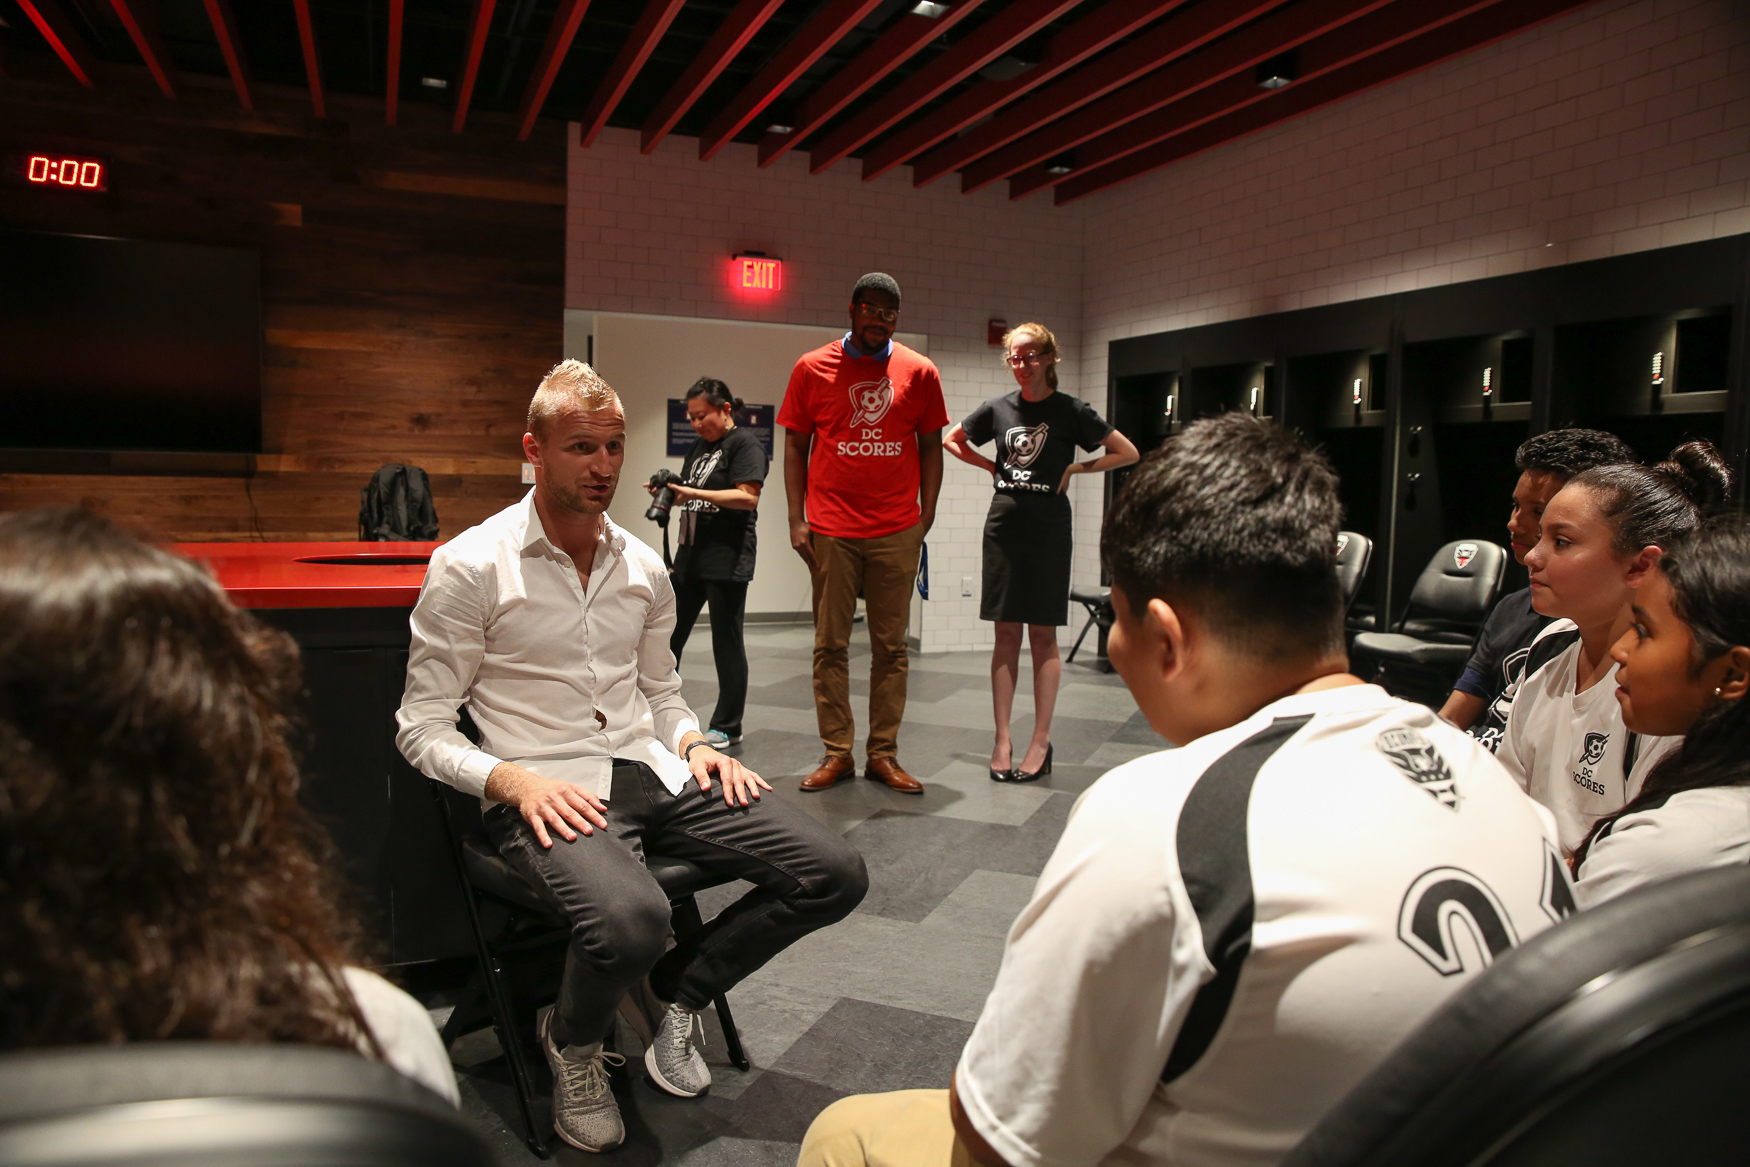 David Ousted talks to DC Scores players in the DC United locker room.{ } (Amanda Andrade-Rhoades/DC Refined)